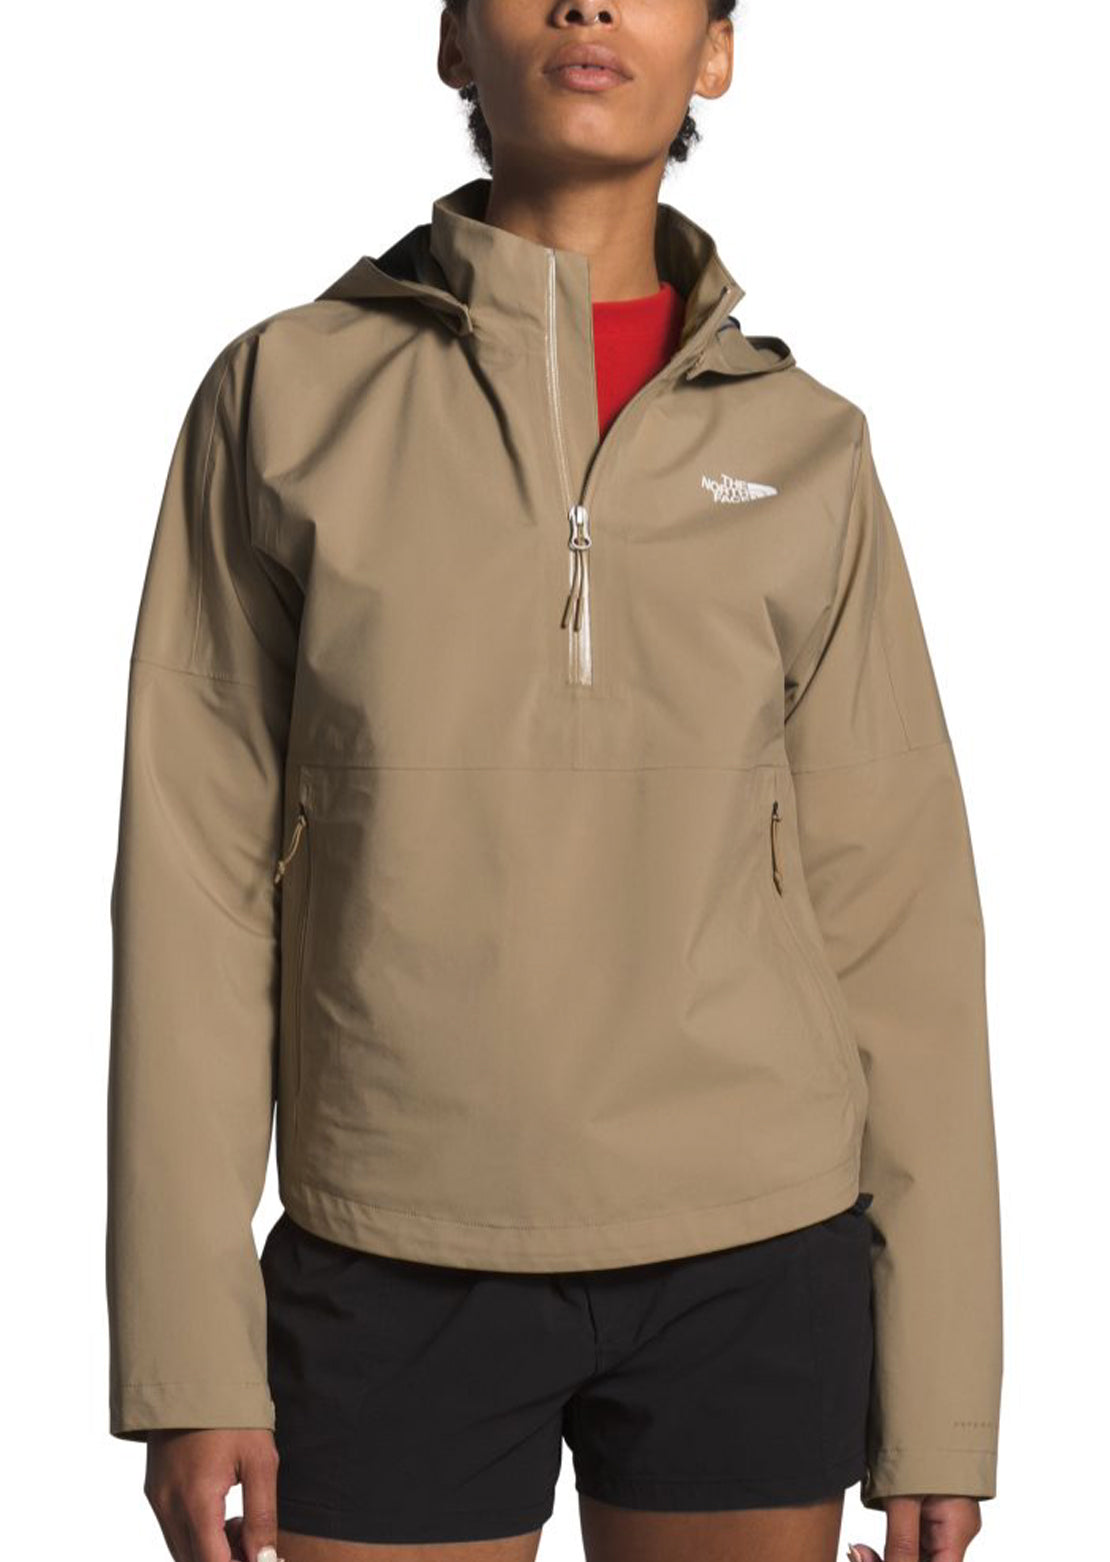 The North Face Women's Arque Active Trail Futurlight Jacket Kelp Tan